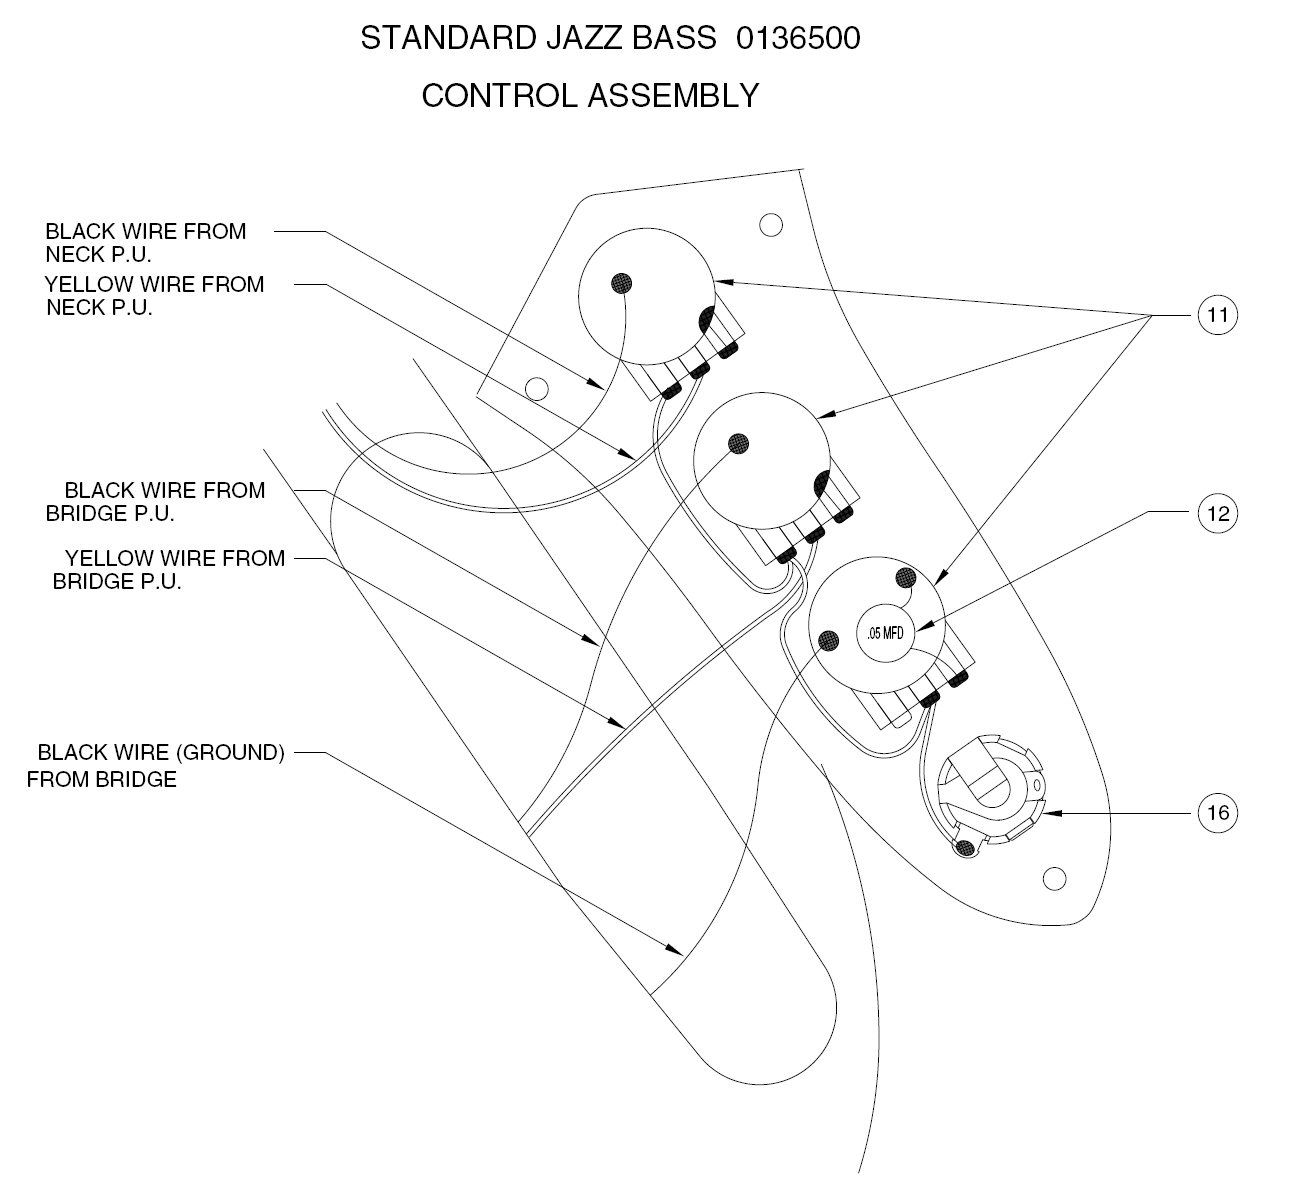 Jack Radio Shack Wiring Diagram